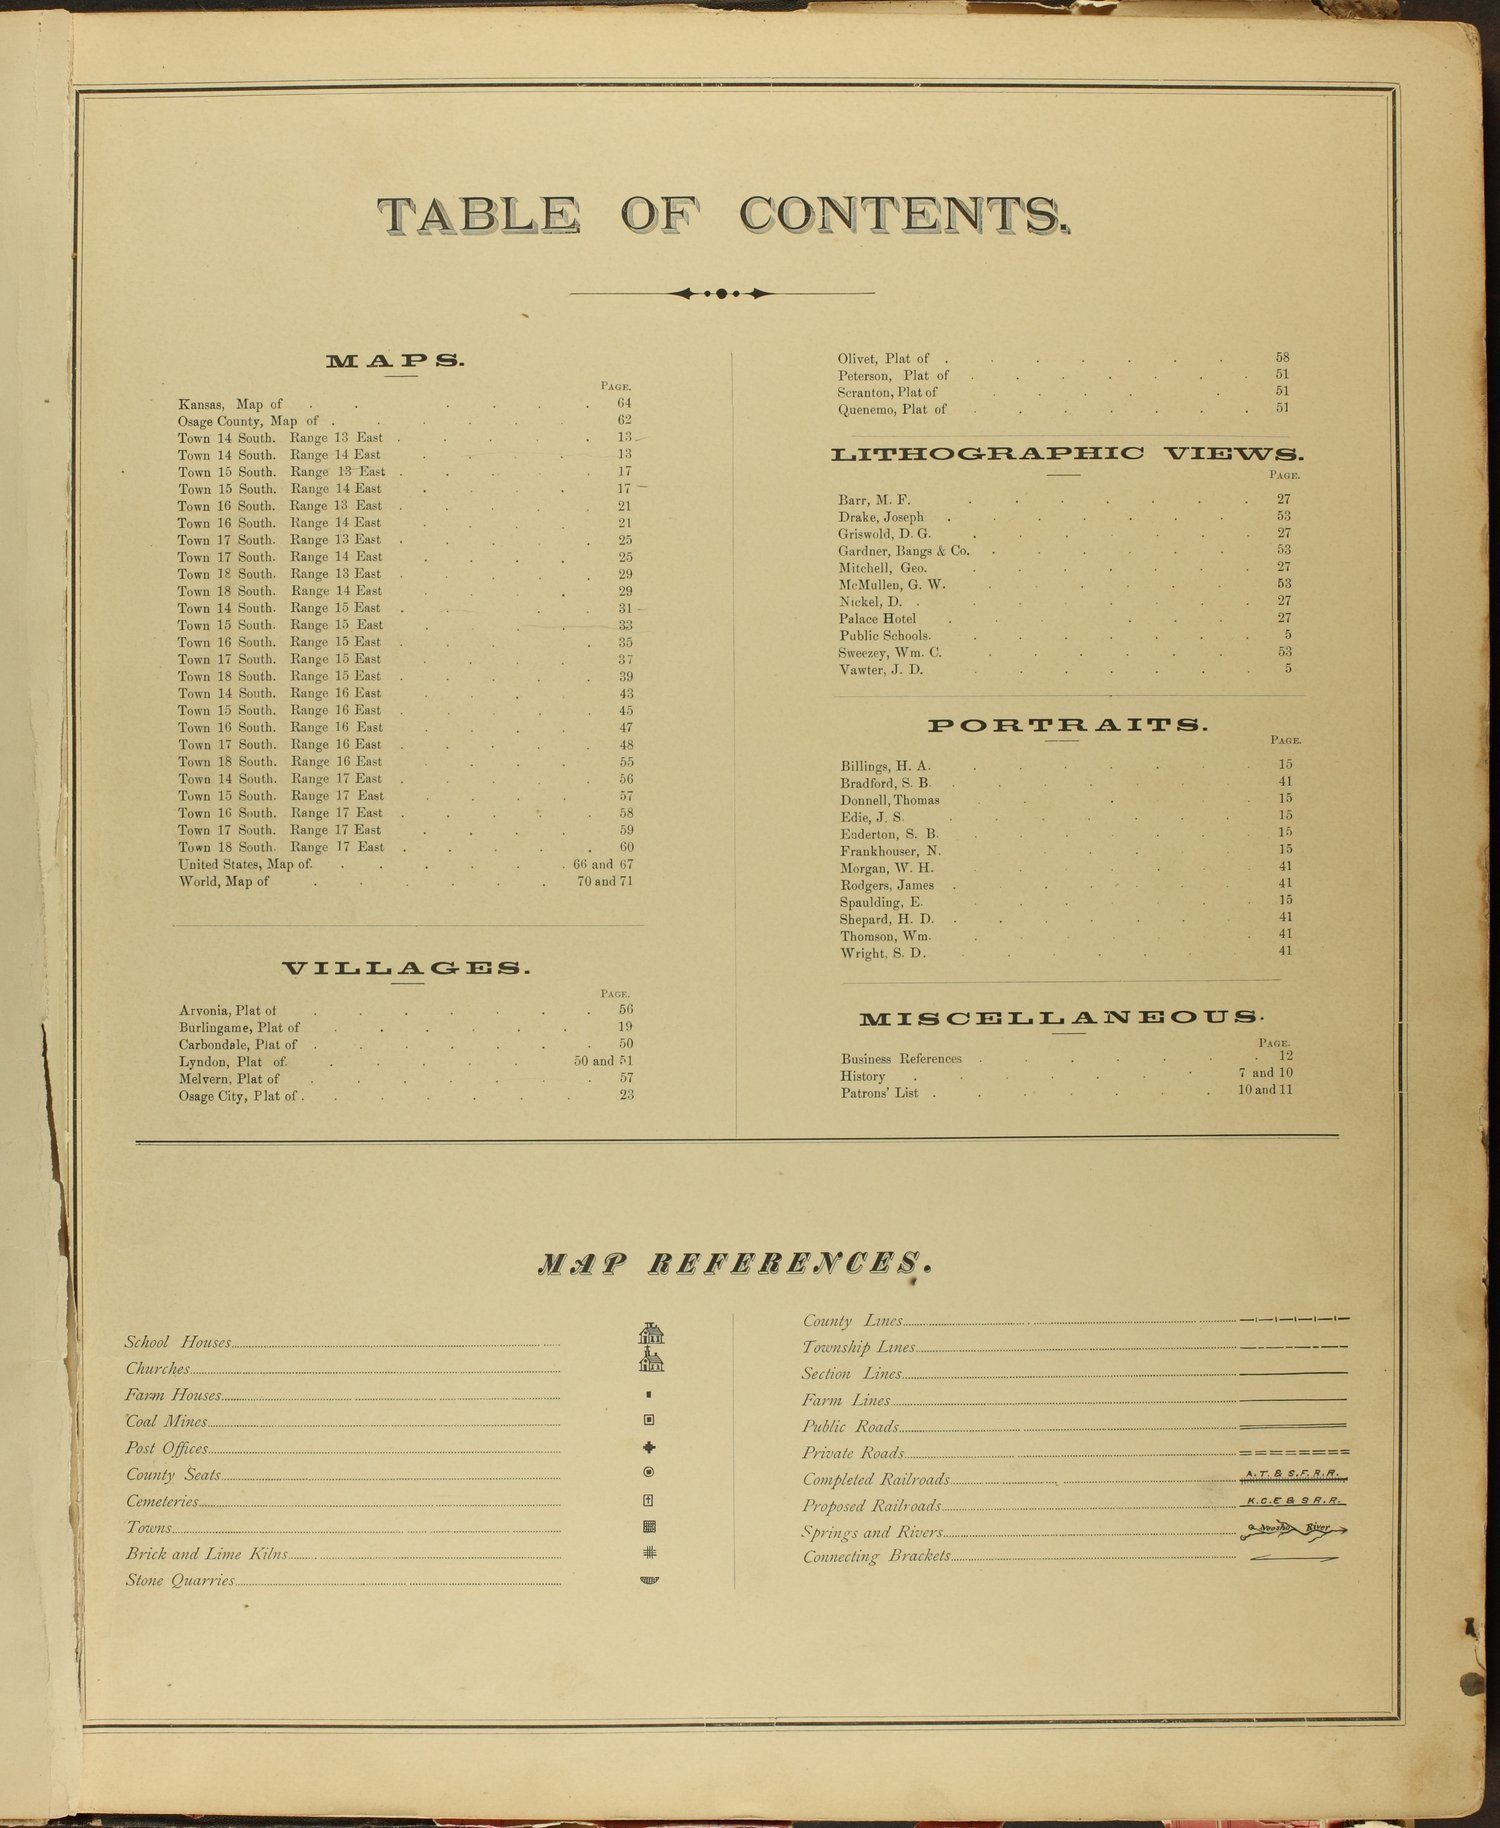 An illustrated historical atlas of Osage County, Kansas - Table of Contents